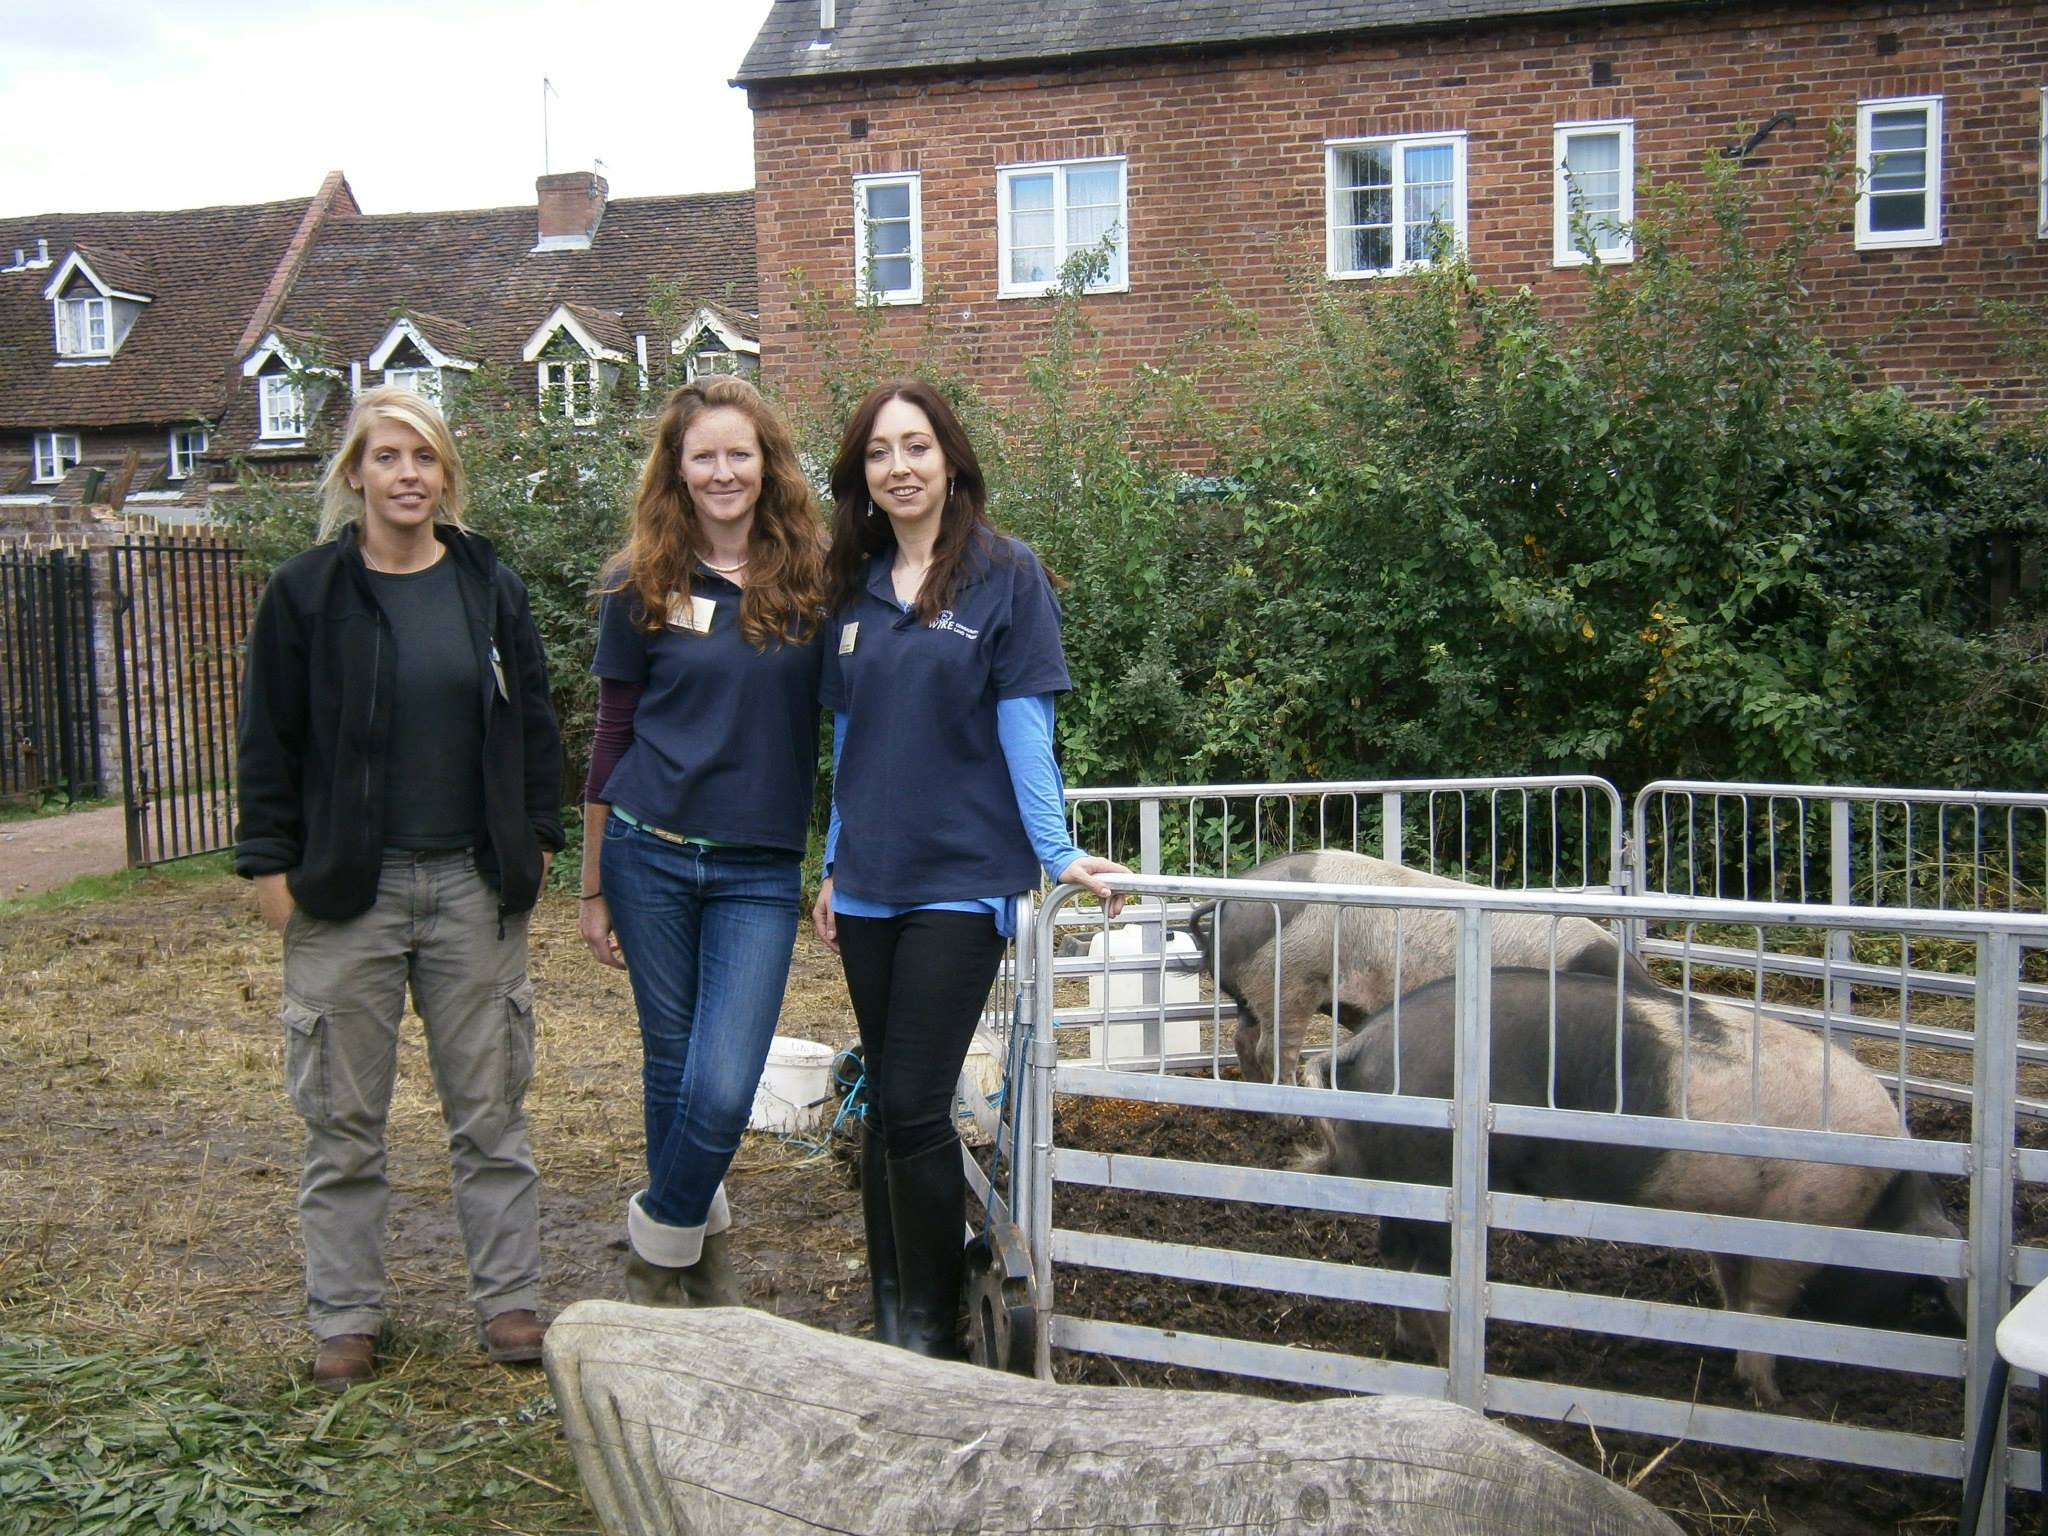 FARM HANDS: From left, Essie Beer-Pearce, apprentice, Sally Pendergast and Jo Grant are opening Uncllys Farm to the public.